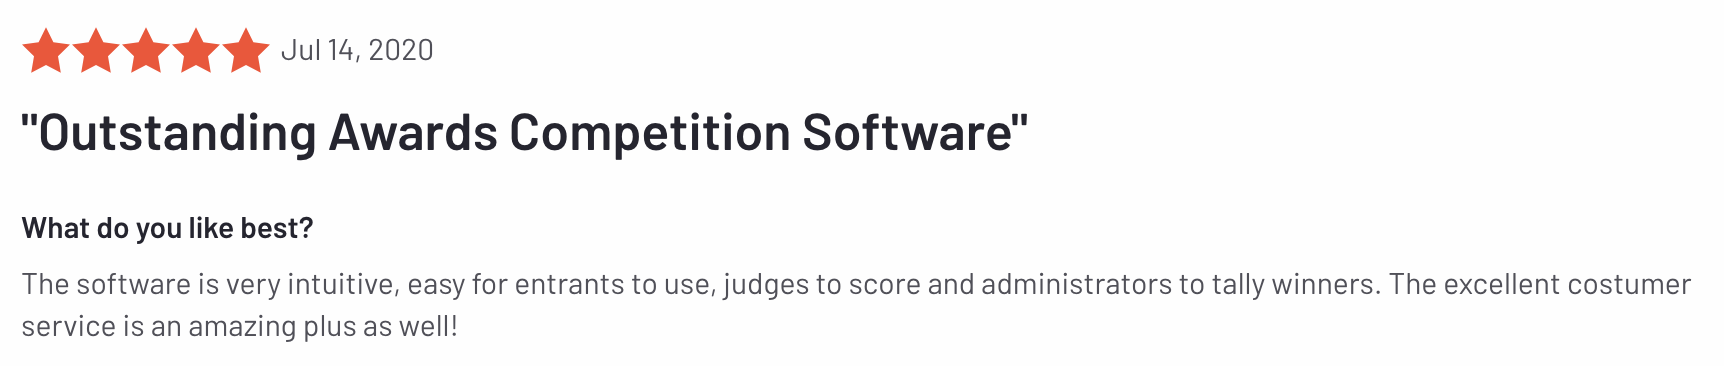 Outstanding awards competition software